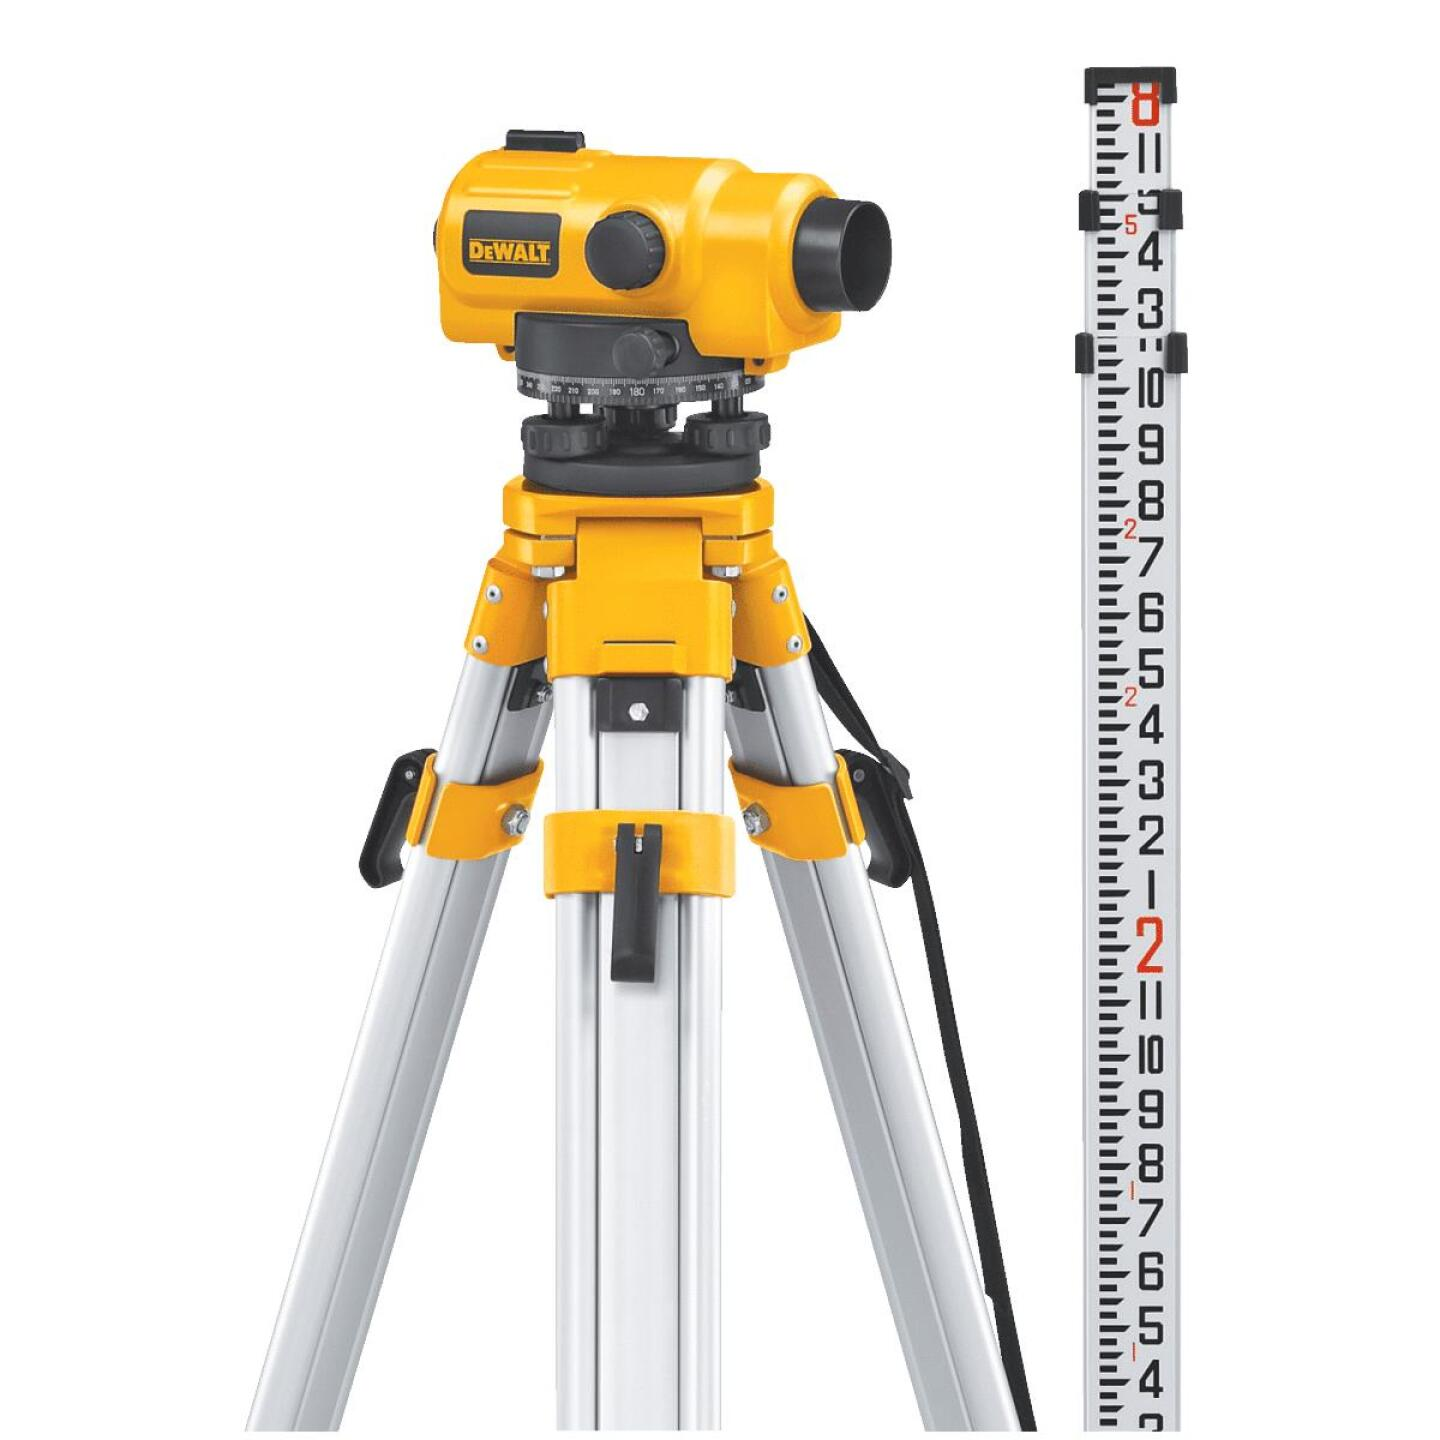 Dewalt 26x Magnifying Auto Sight Level Image 3